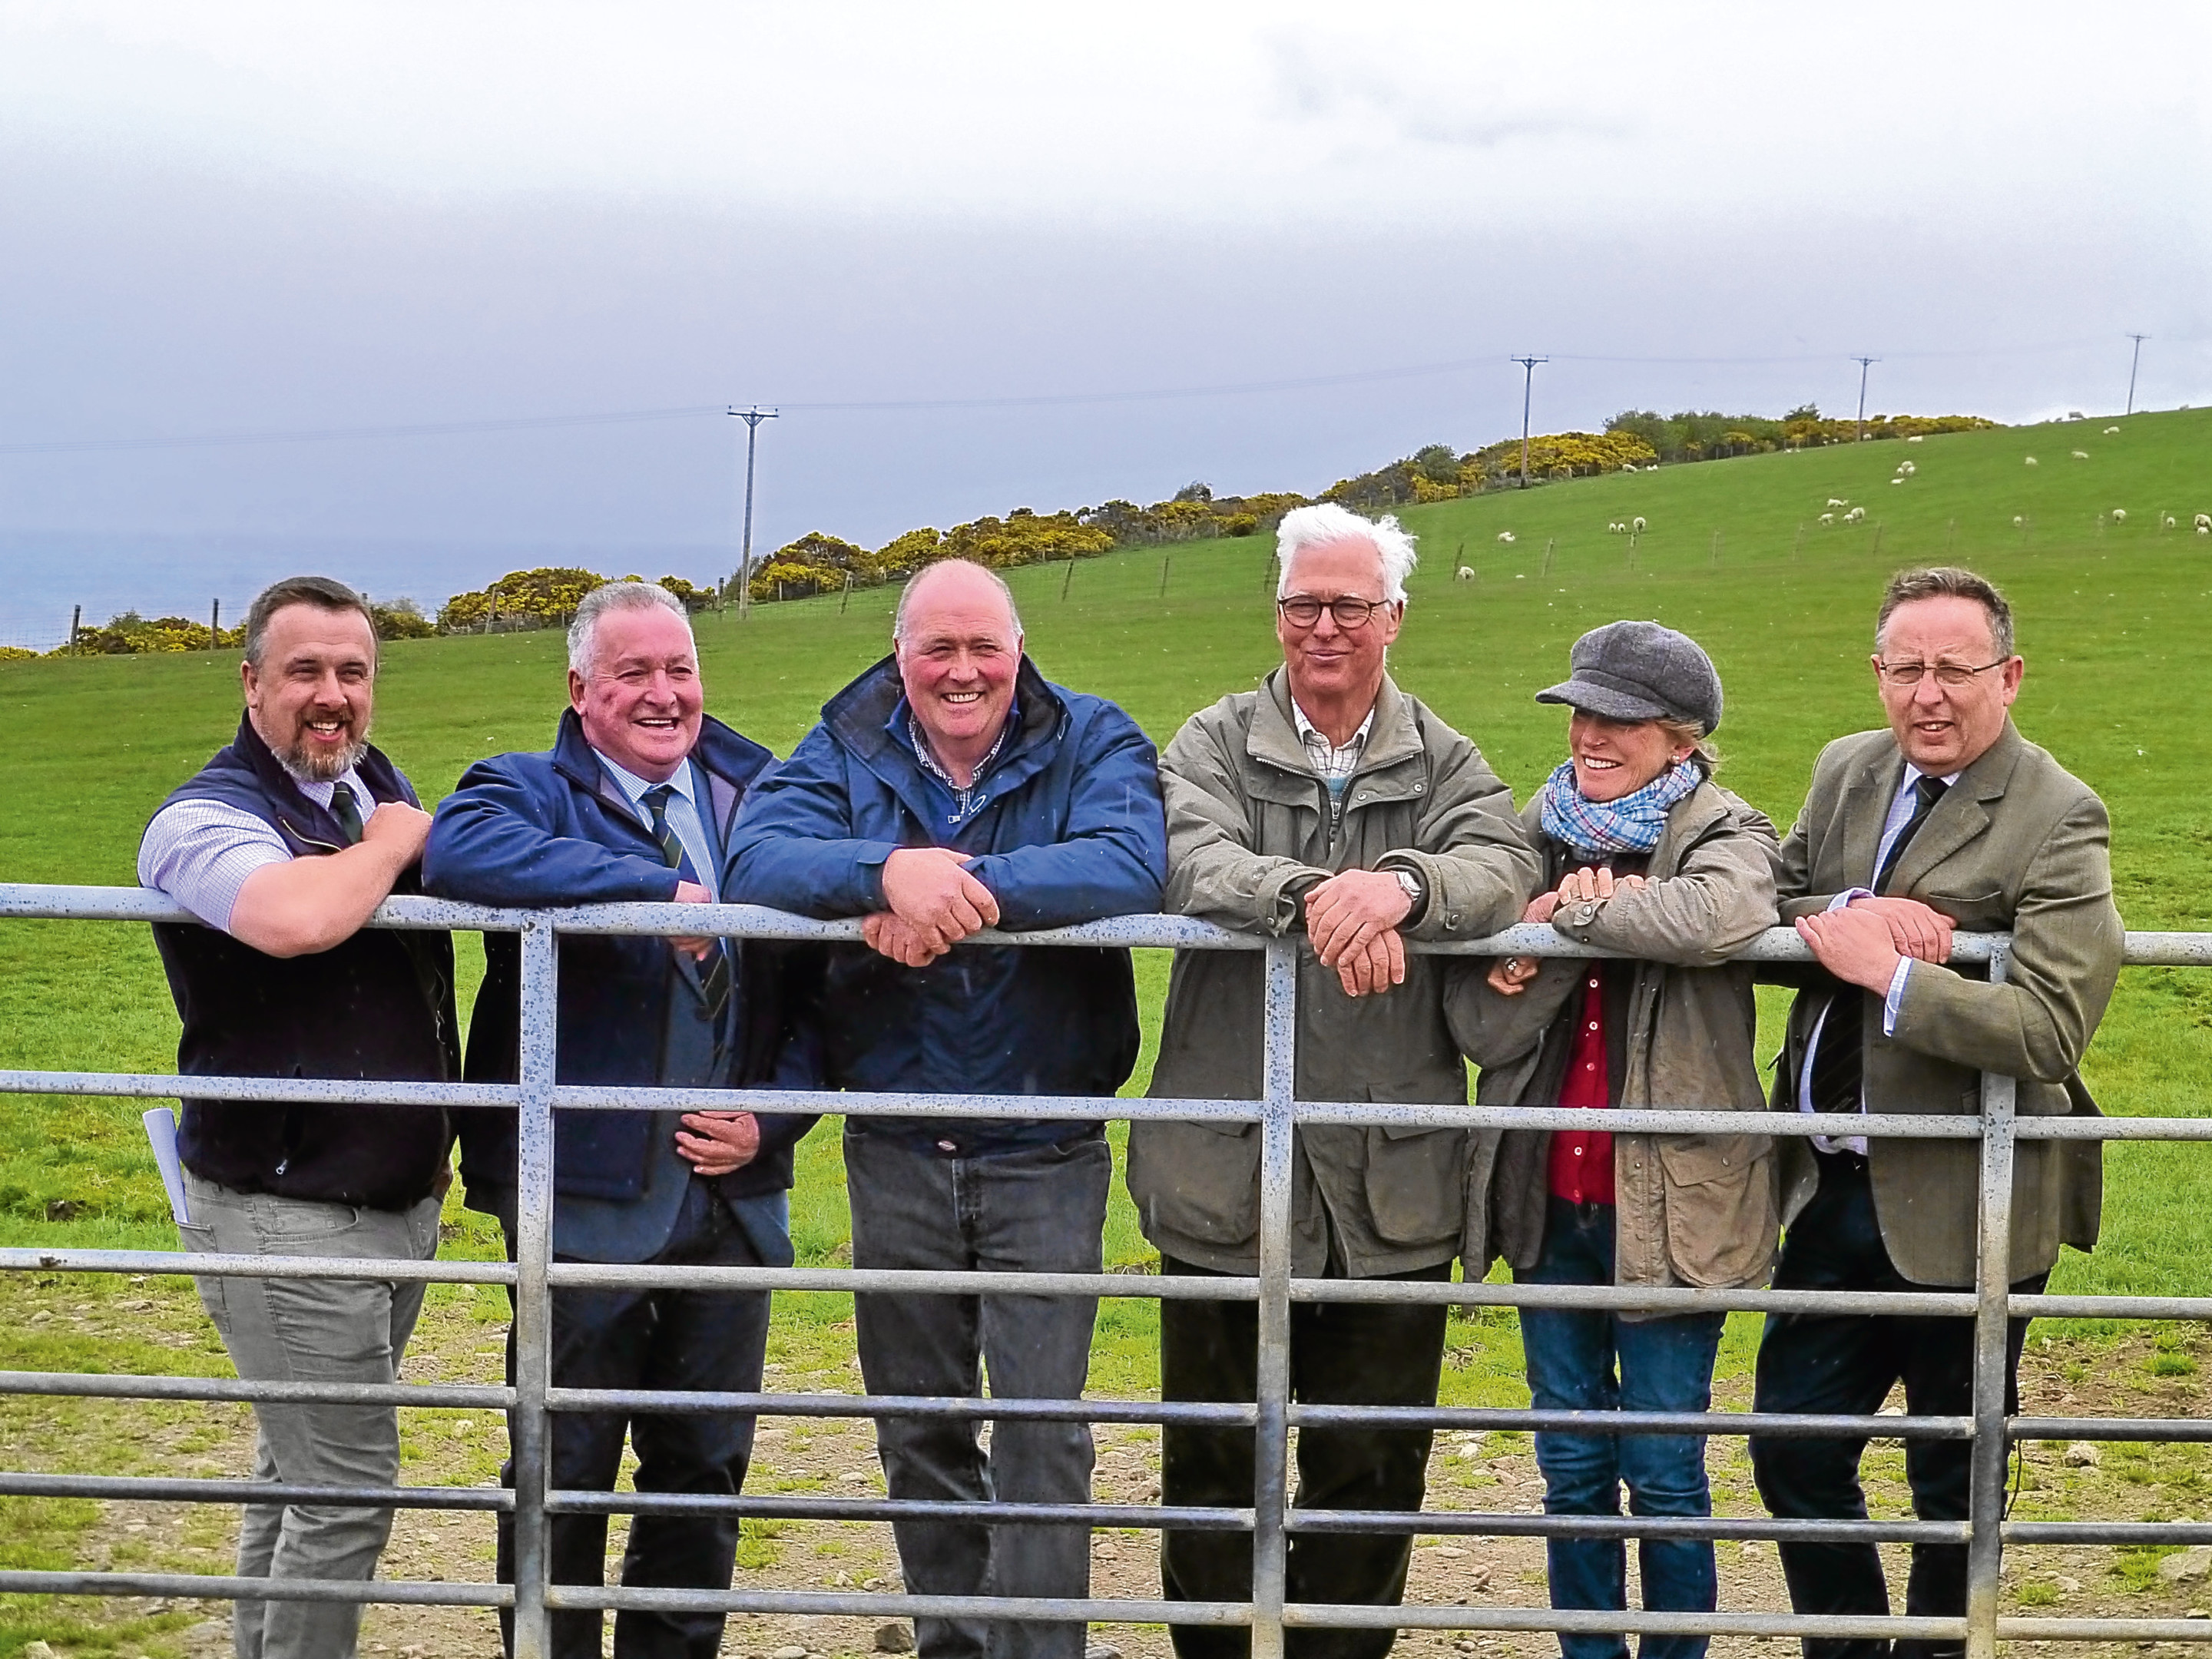 From left to right - NSA Scotland chairman, John Fyall, organising committee chairman, George Allan, farm manager Andrew Maclean, host farmers, Robert and Caroline Dalrymple, and event organiser, Euan Emslie